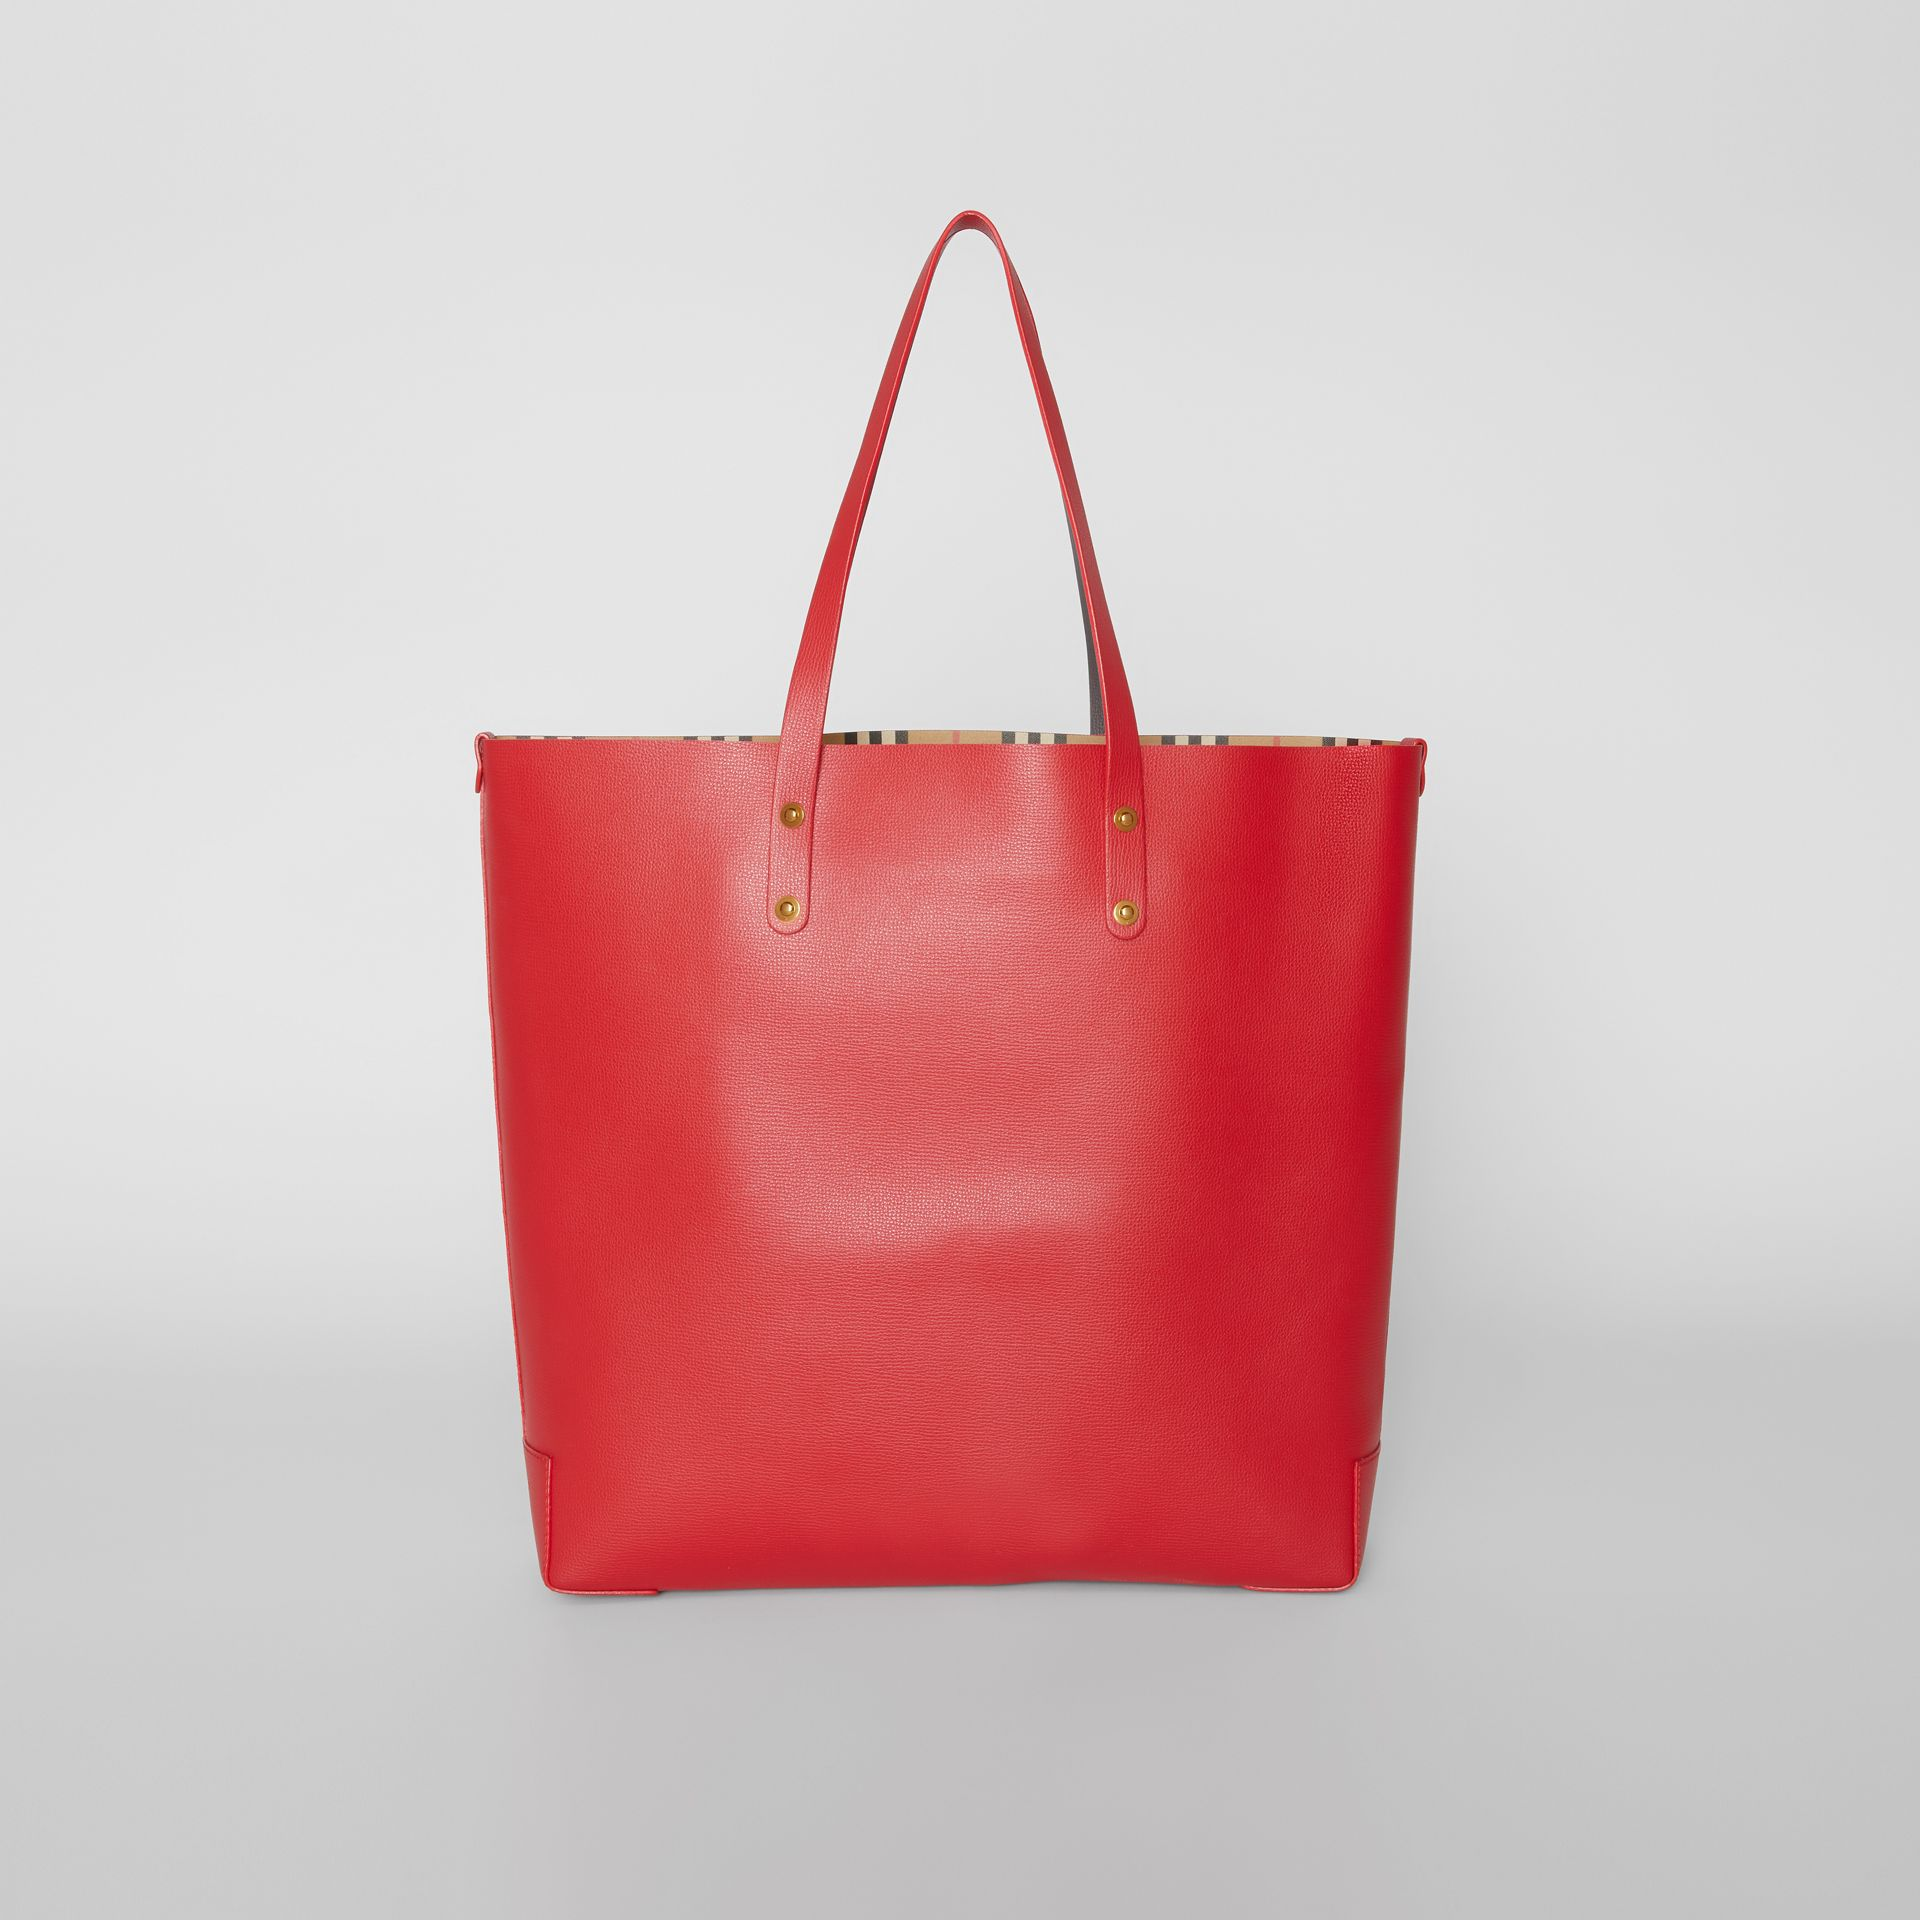 Grand sac cabas en cuir avec écusson (Rouge Rouille) - Femme | Burberry - photo de la galerie 7